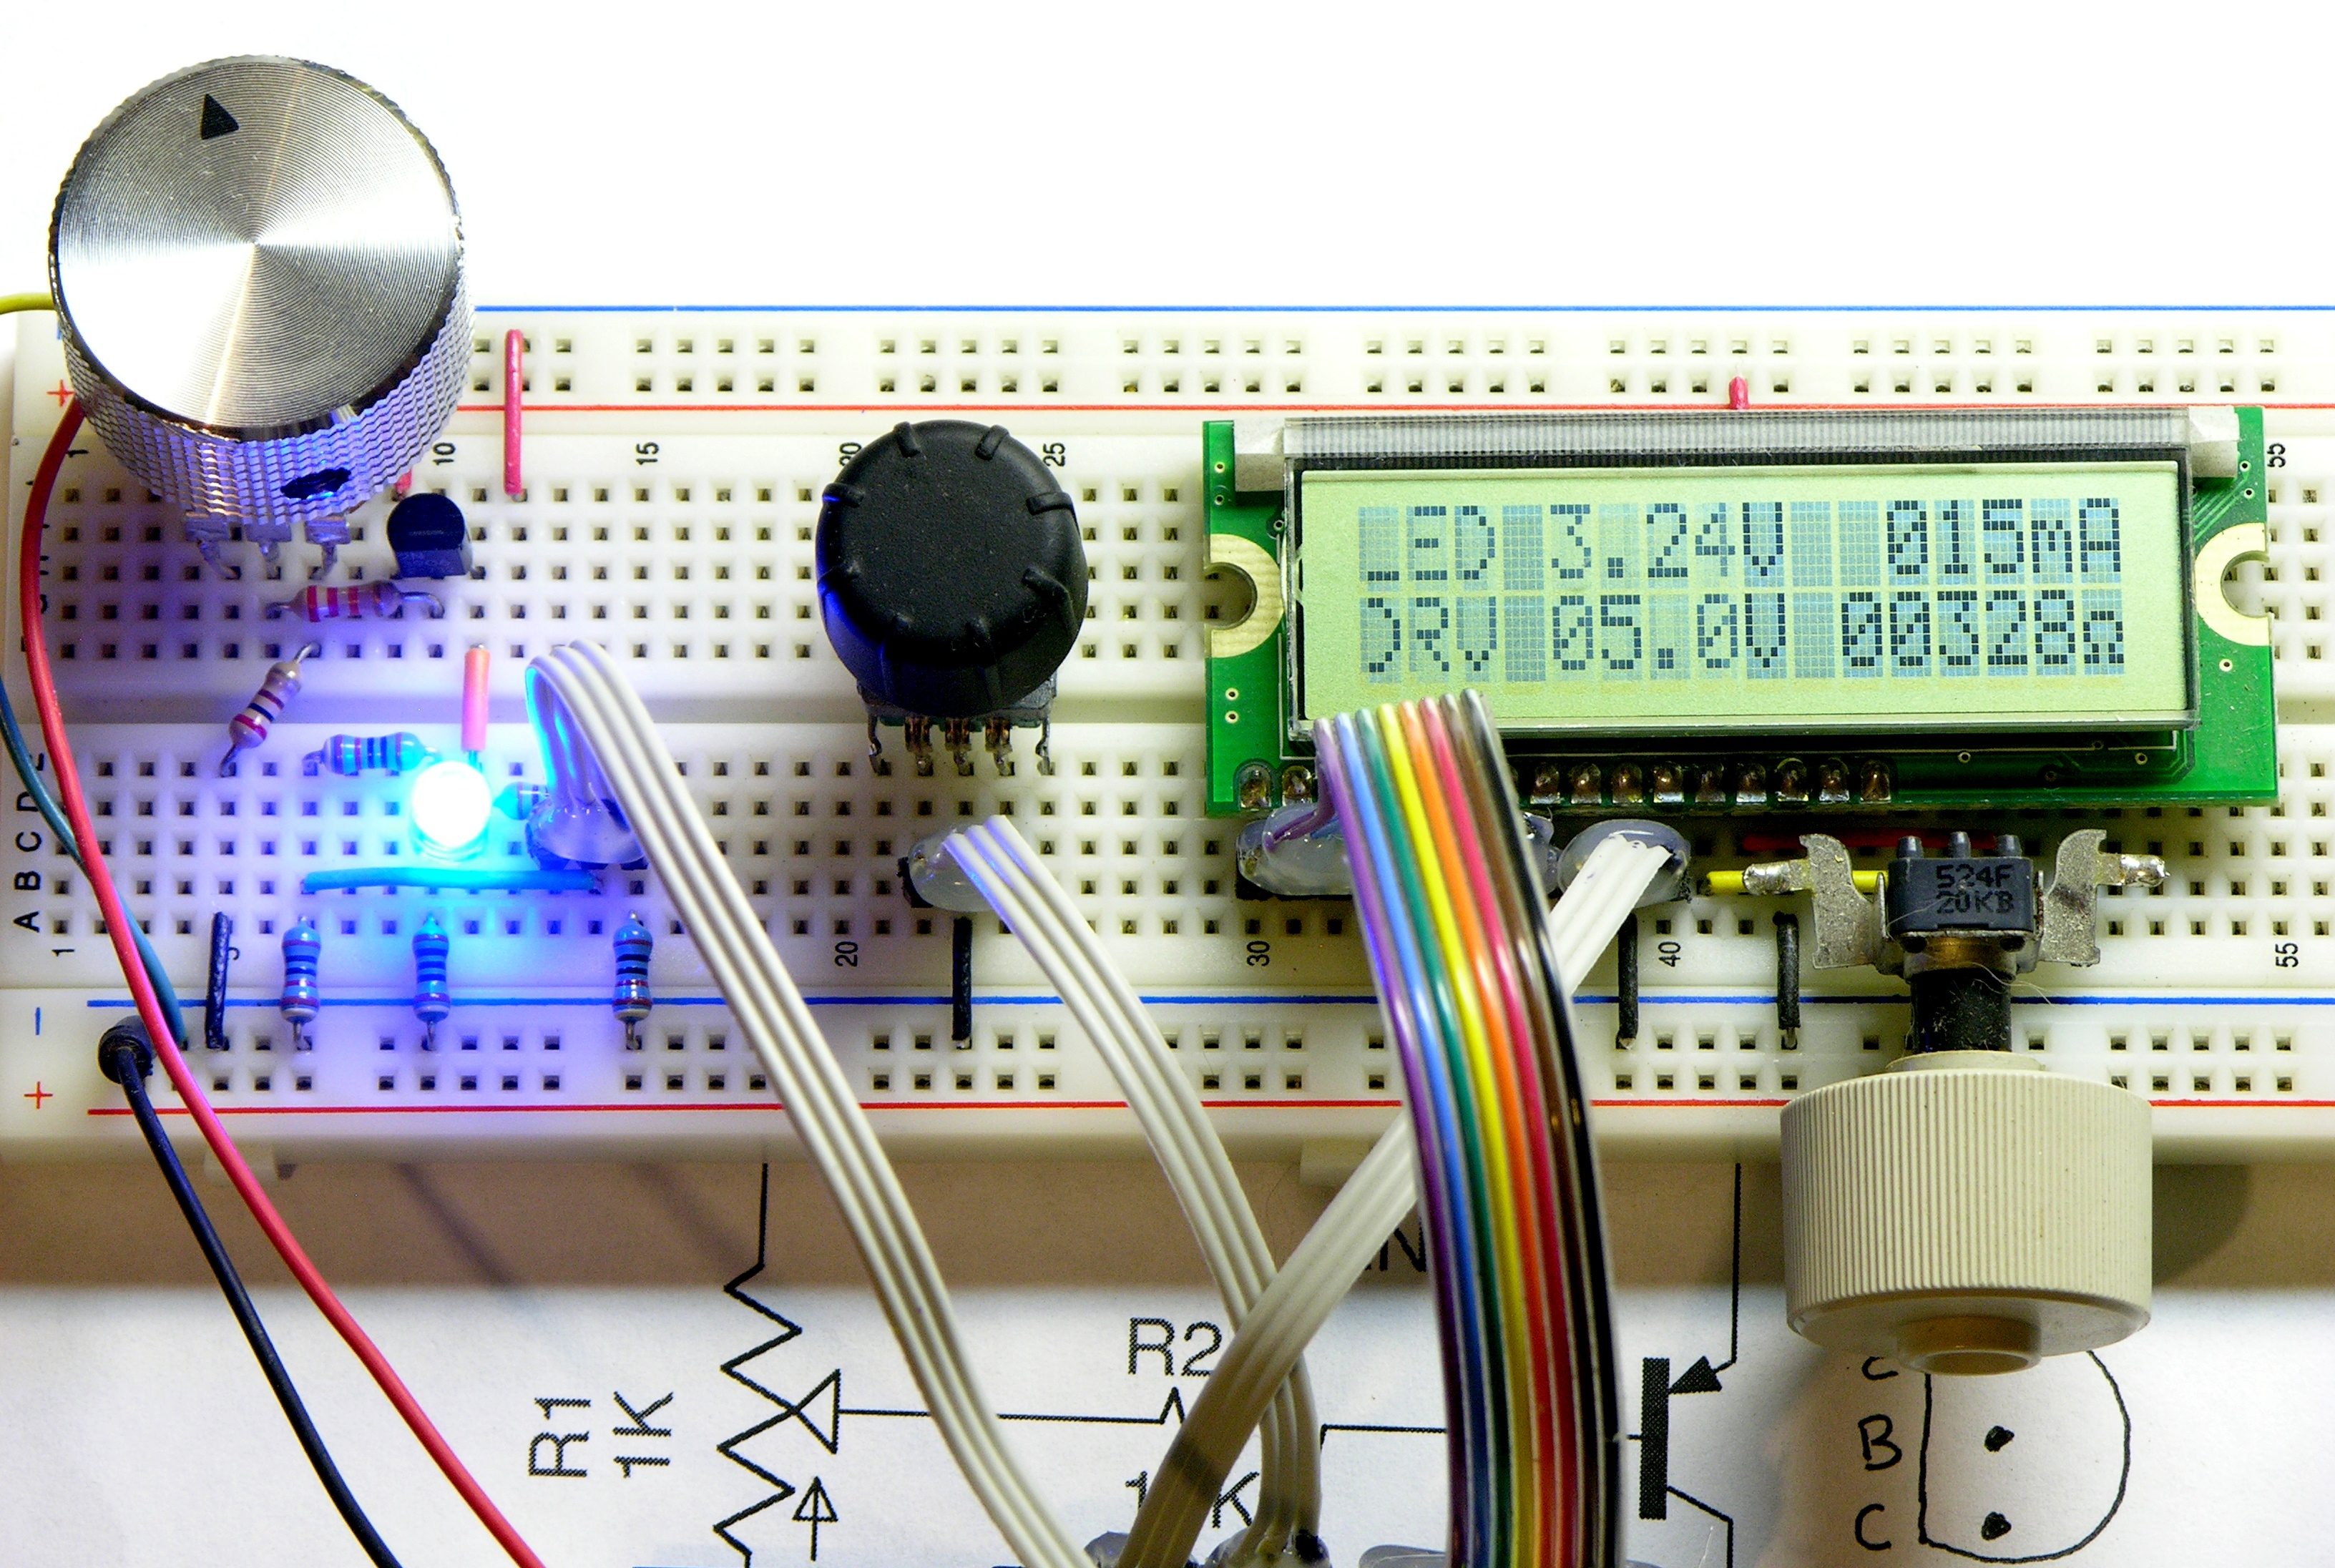 Circuits Keiths Electronics Blog Voltage Variable Resistor Alternative Energy Led Calculator Prototype With Transistor Current Drive